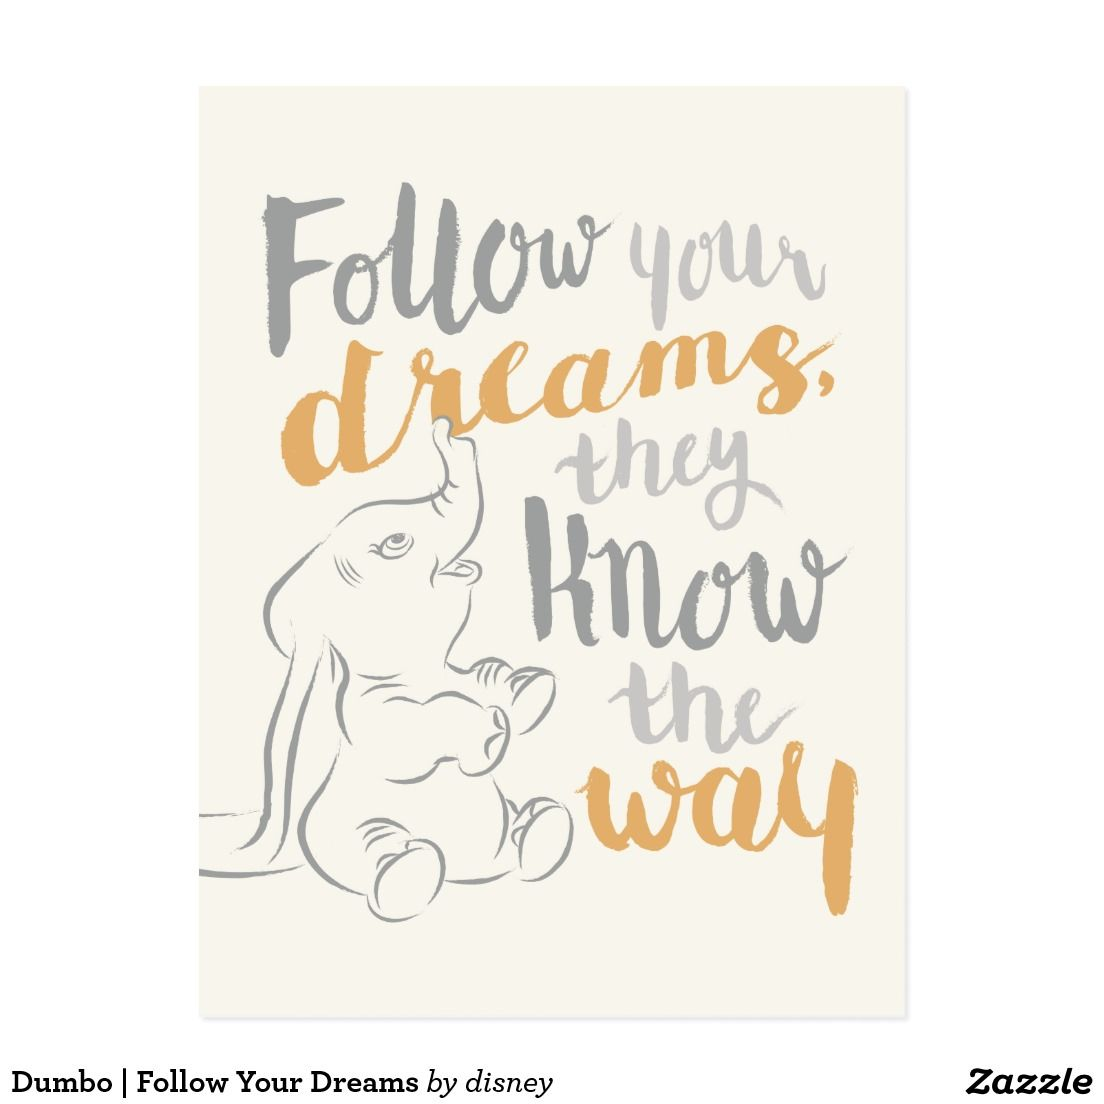 Quote Frame Not Included Dumbo Inspired Watercolour Poster Alternative TV//Movie Prints in Various Sizes